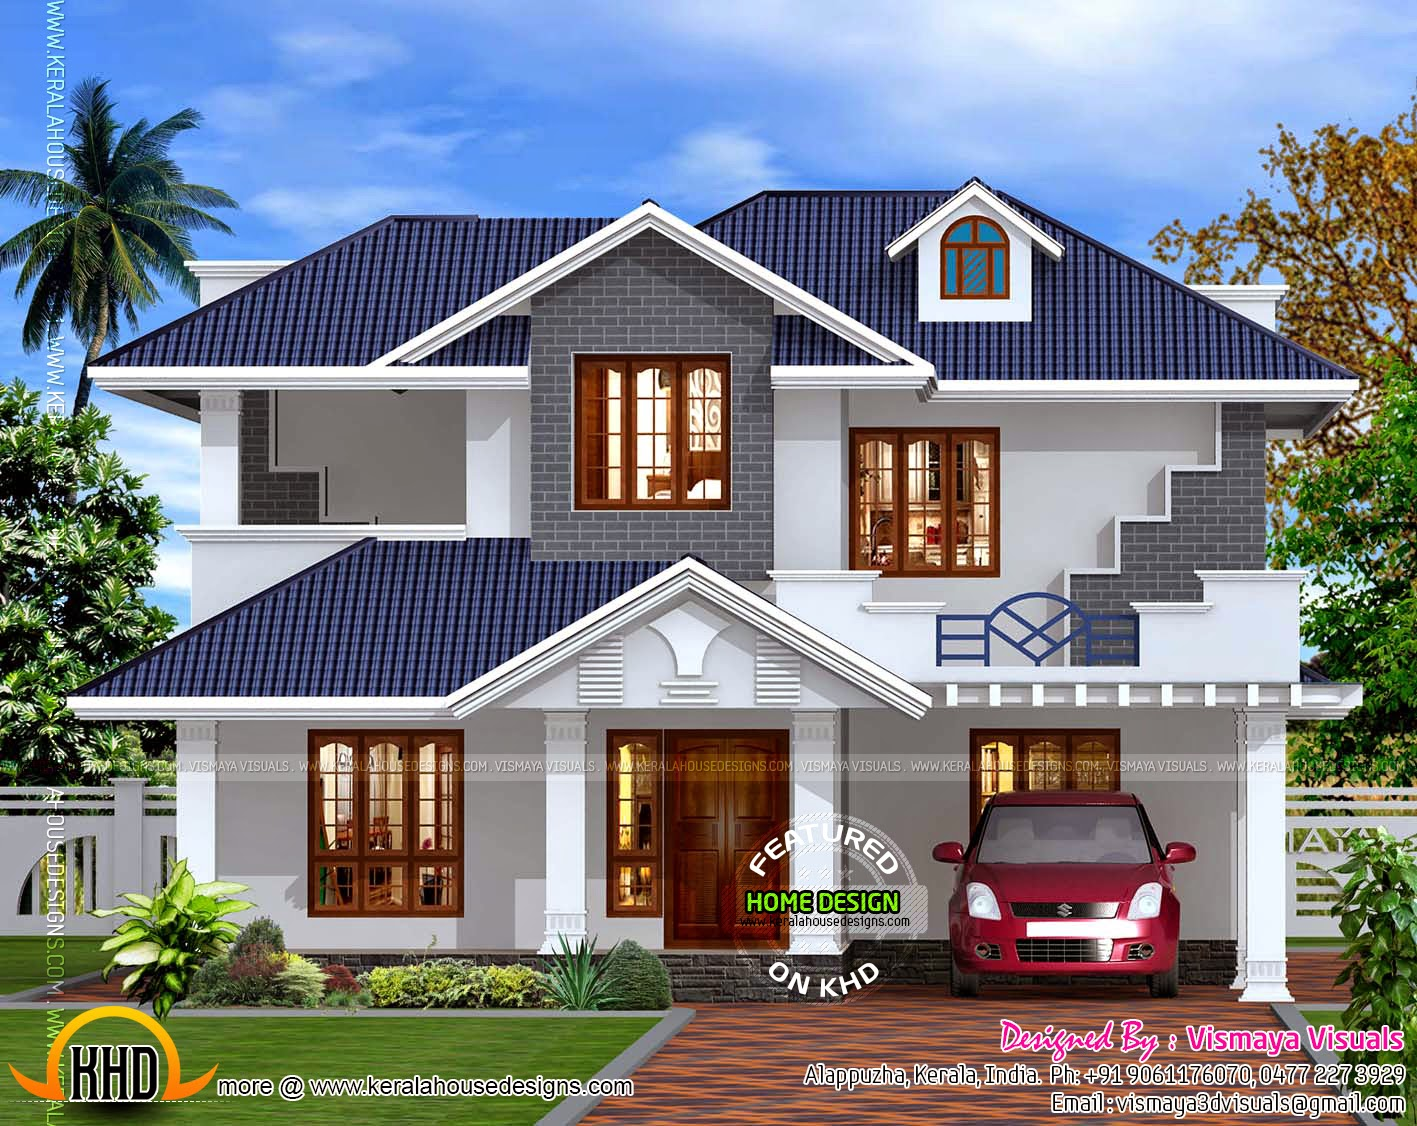 Kerala style villa exterior kerala home design and floor for New model houses in kerala